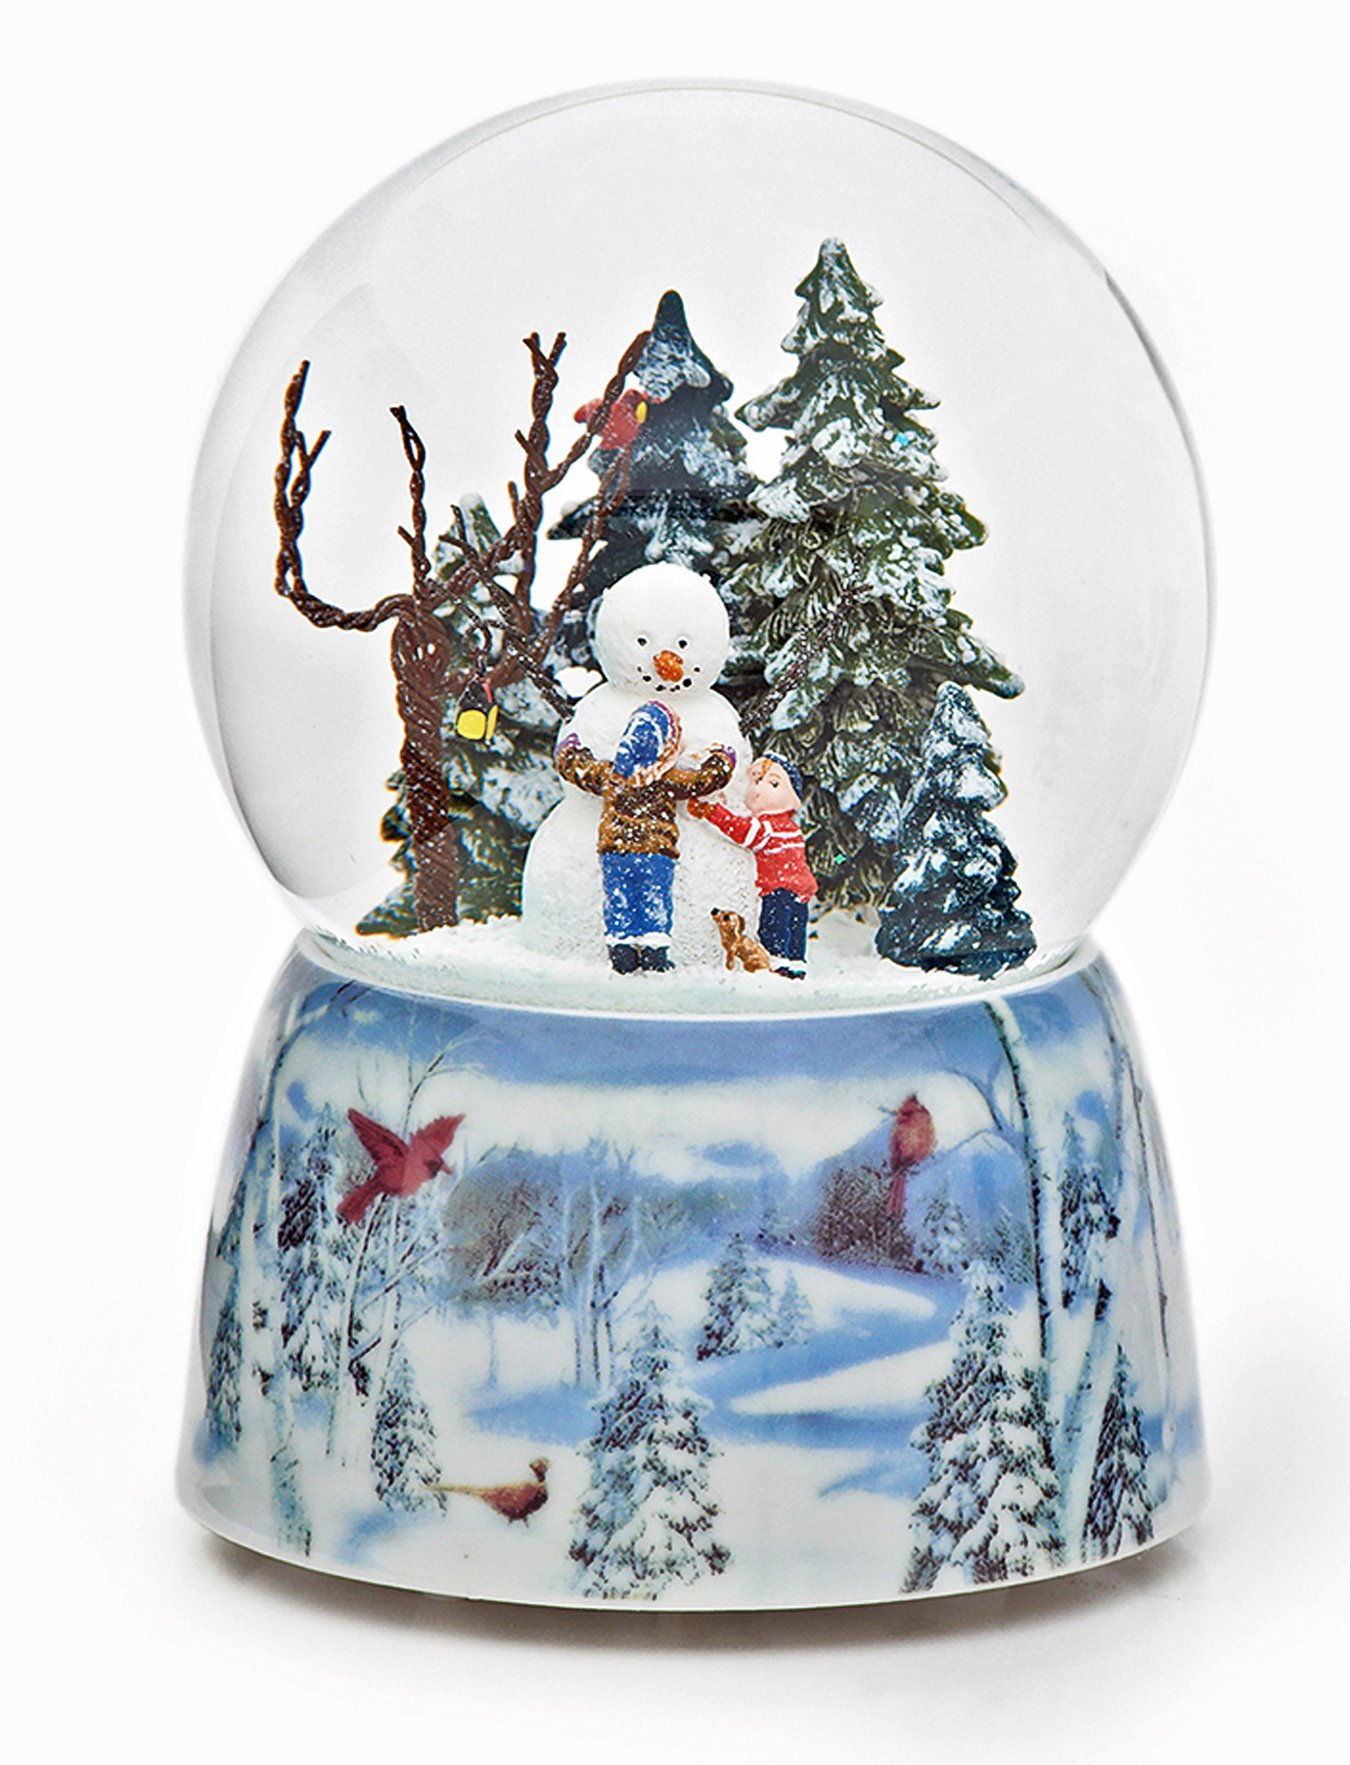 KensingtonRow Home Collection GLEEFUL SNOWMAN MUSICAL SNOW GLOBE - SNOWMAN WITH CHILDREN